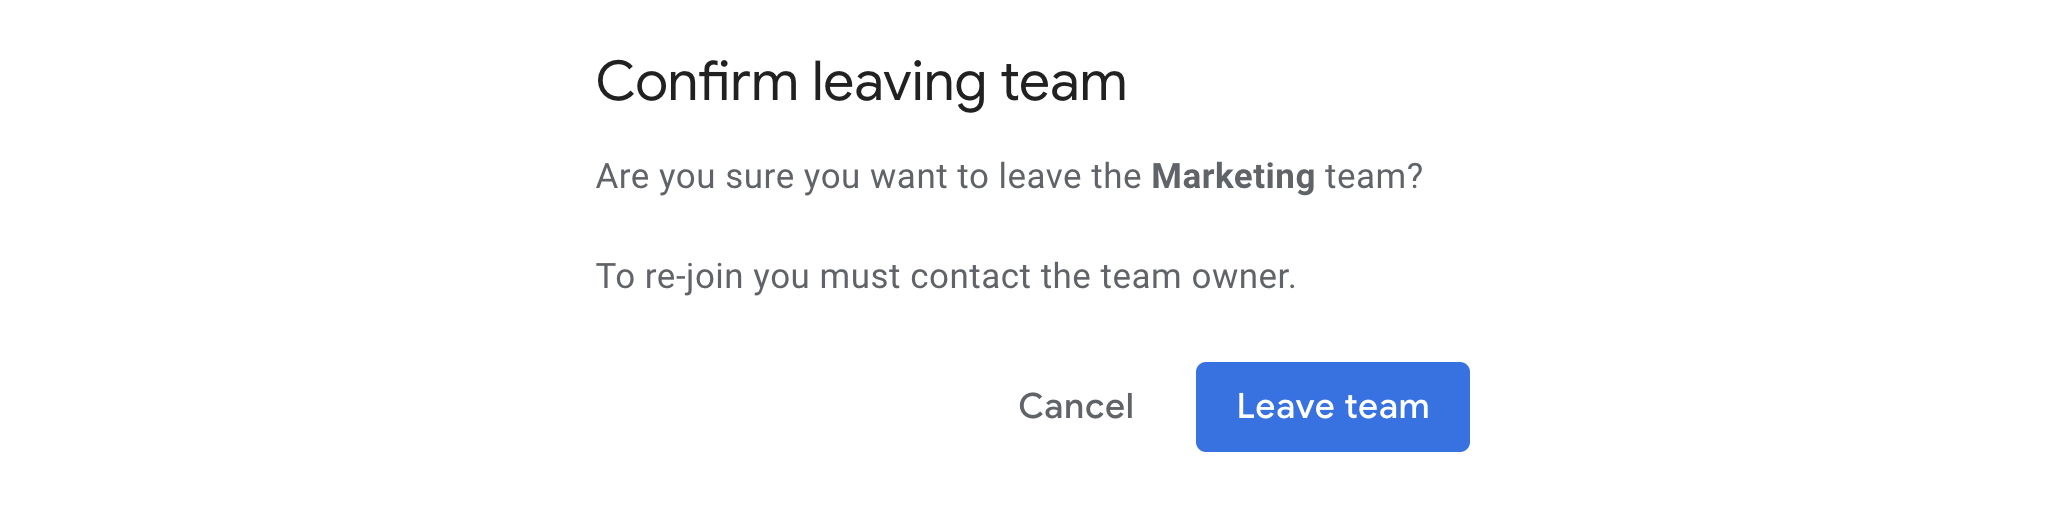 Confirm you want to leave the team